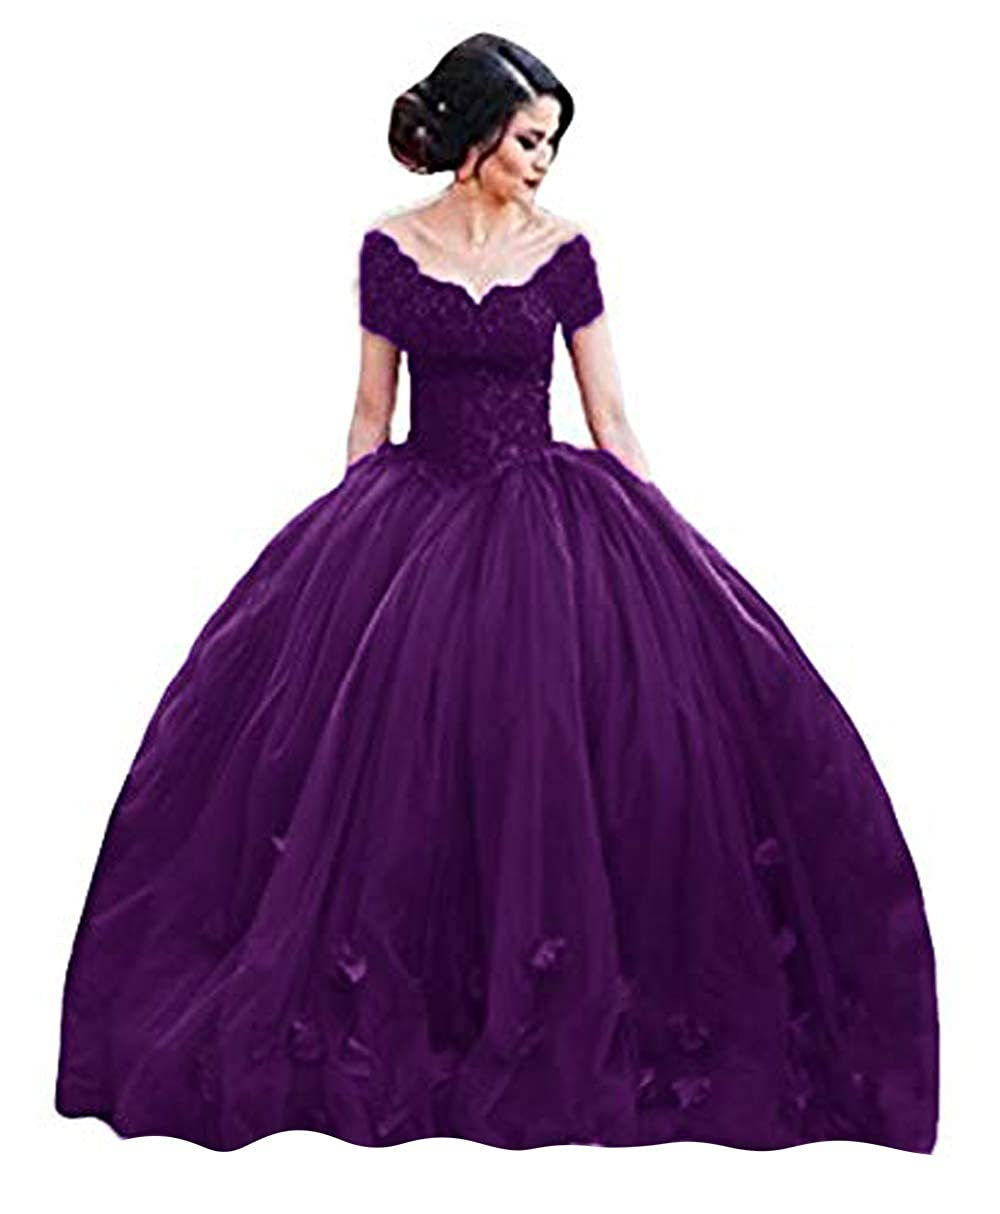 The Peachess 2019 Ball Gown Princess Quinceanera Dresses Lace Bodice